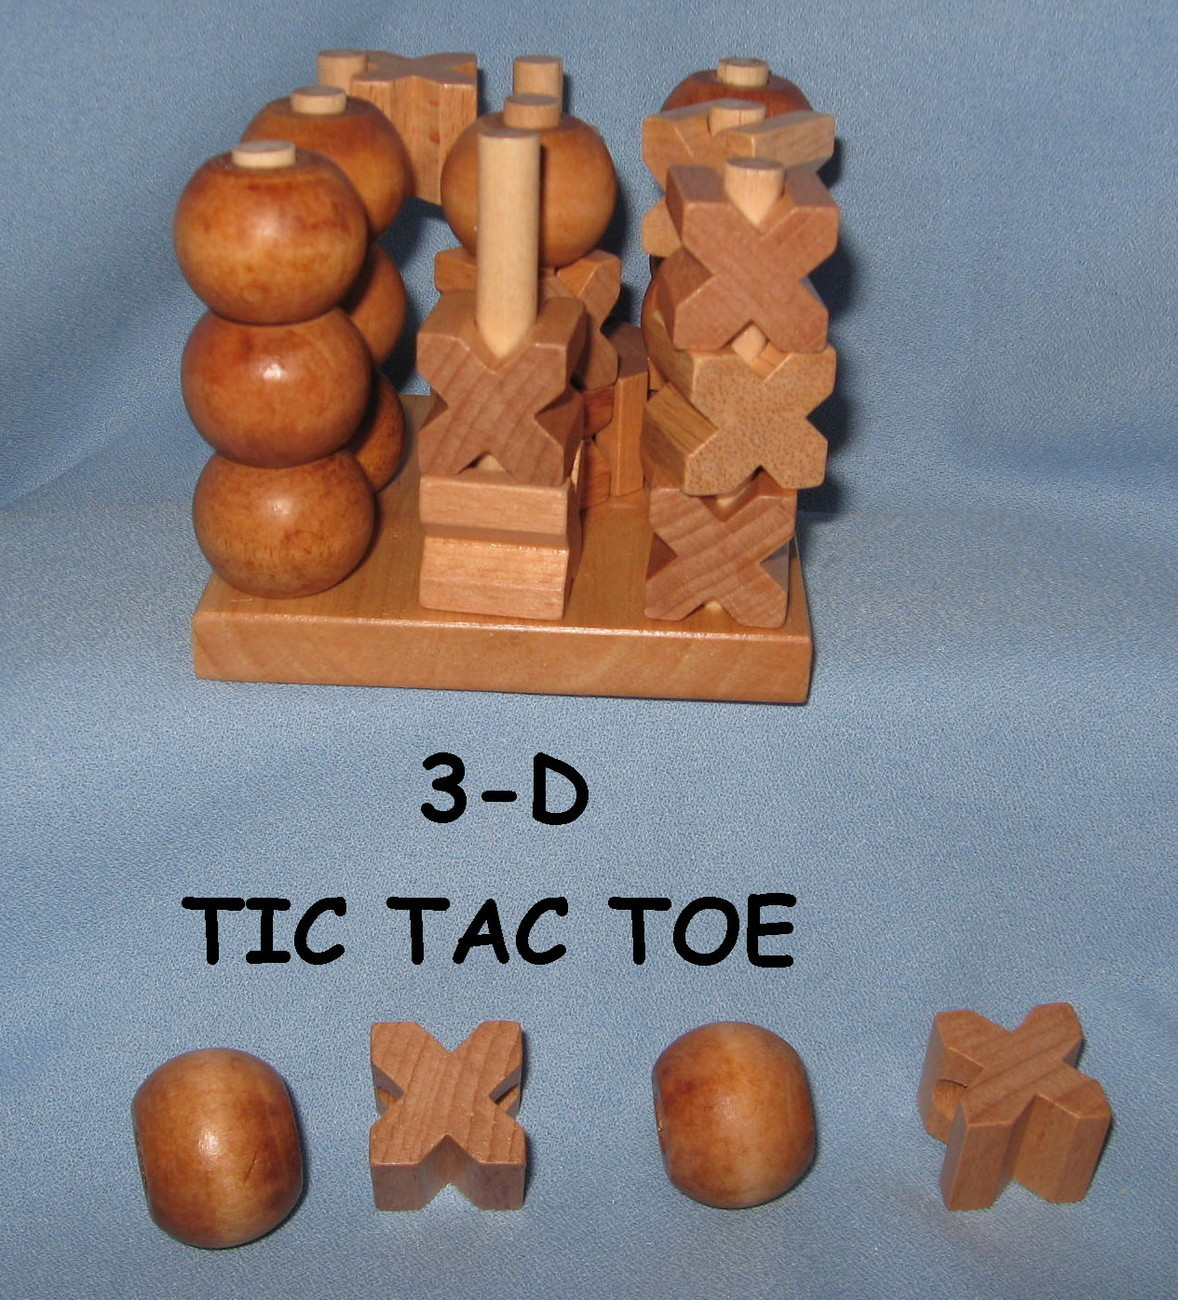 3D dimentional Tic Tac Toe Game child adult  wooden stack party toy wood H4